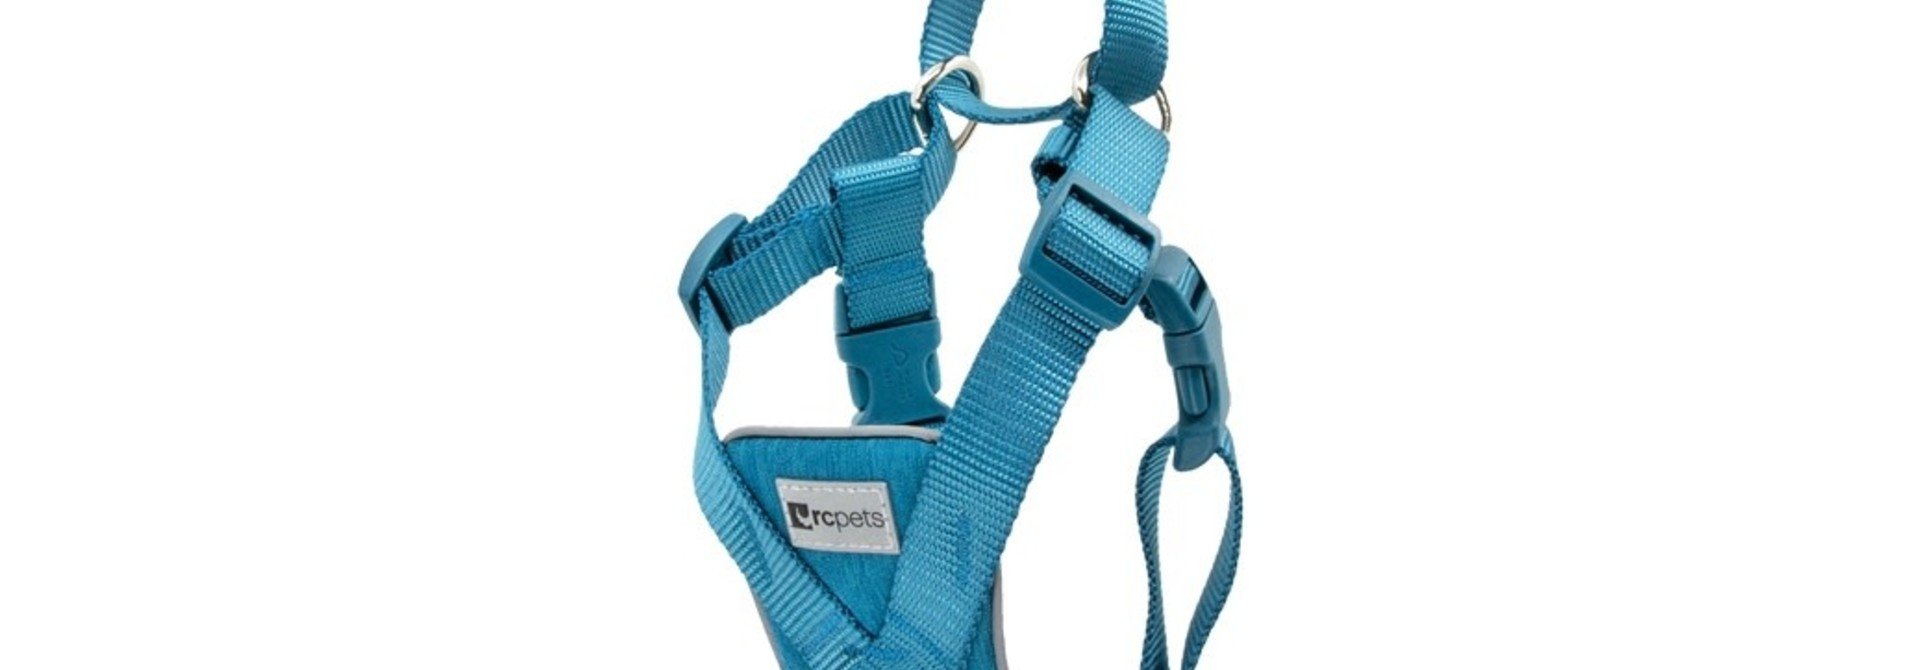 Tempo No Pull Harness Large -Heather Teal